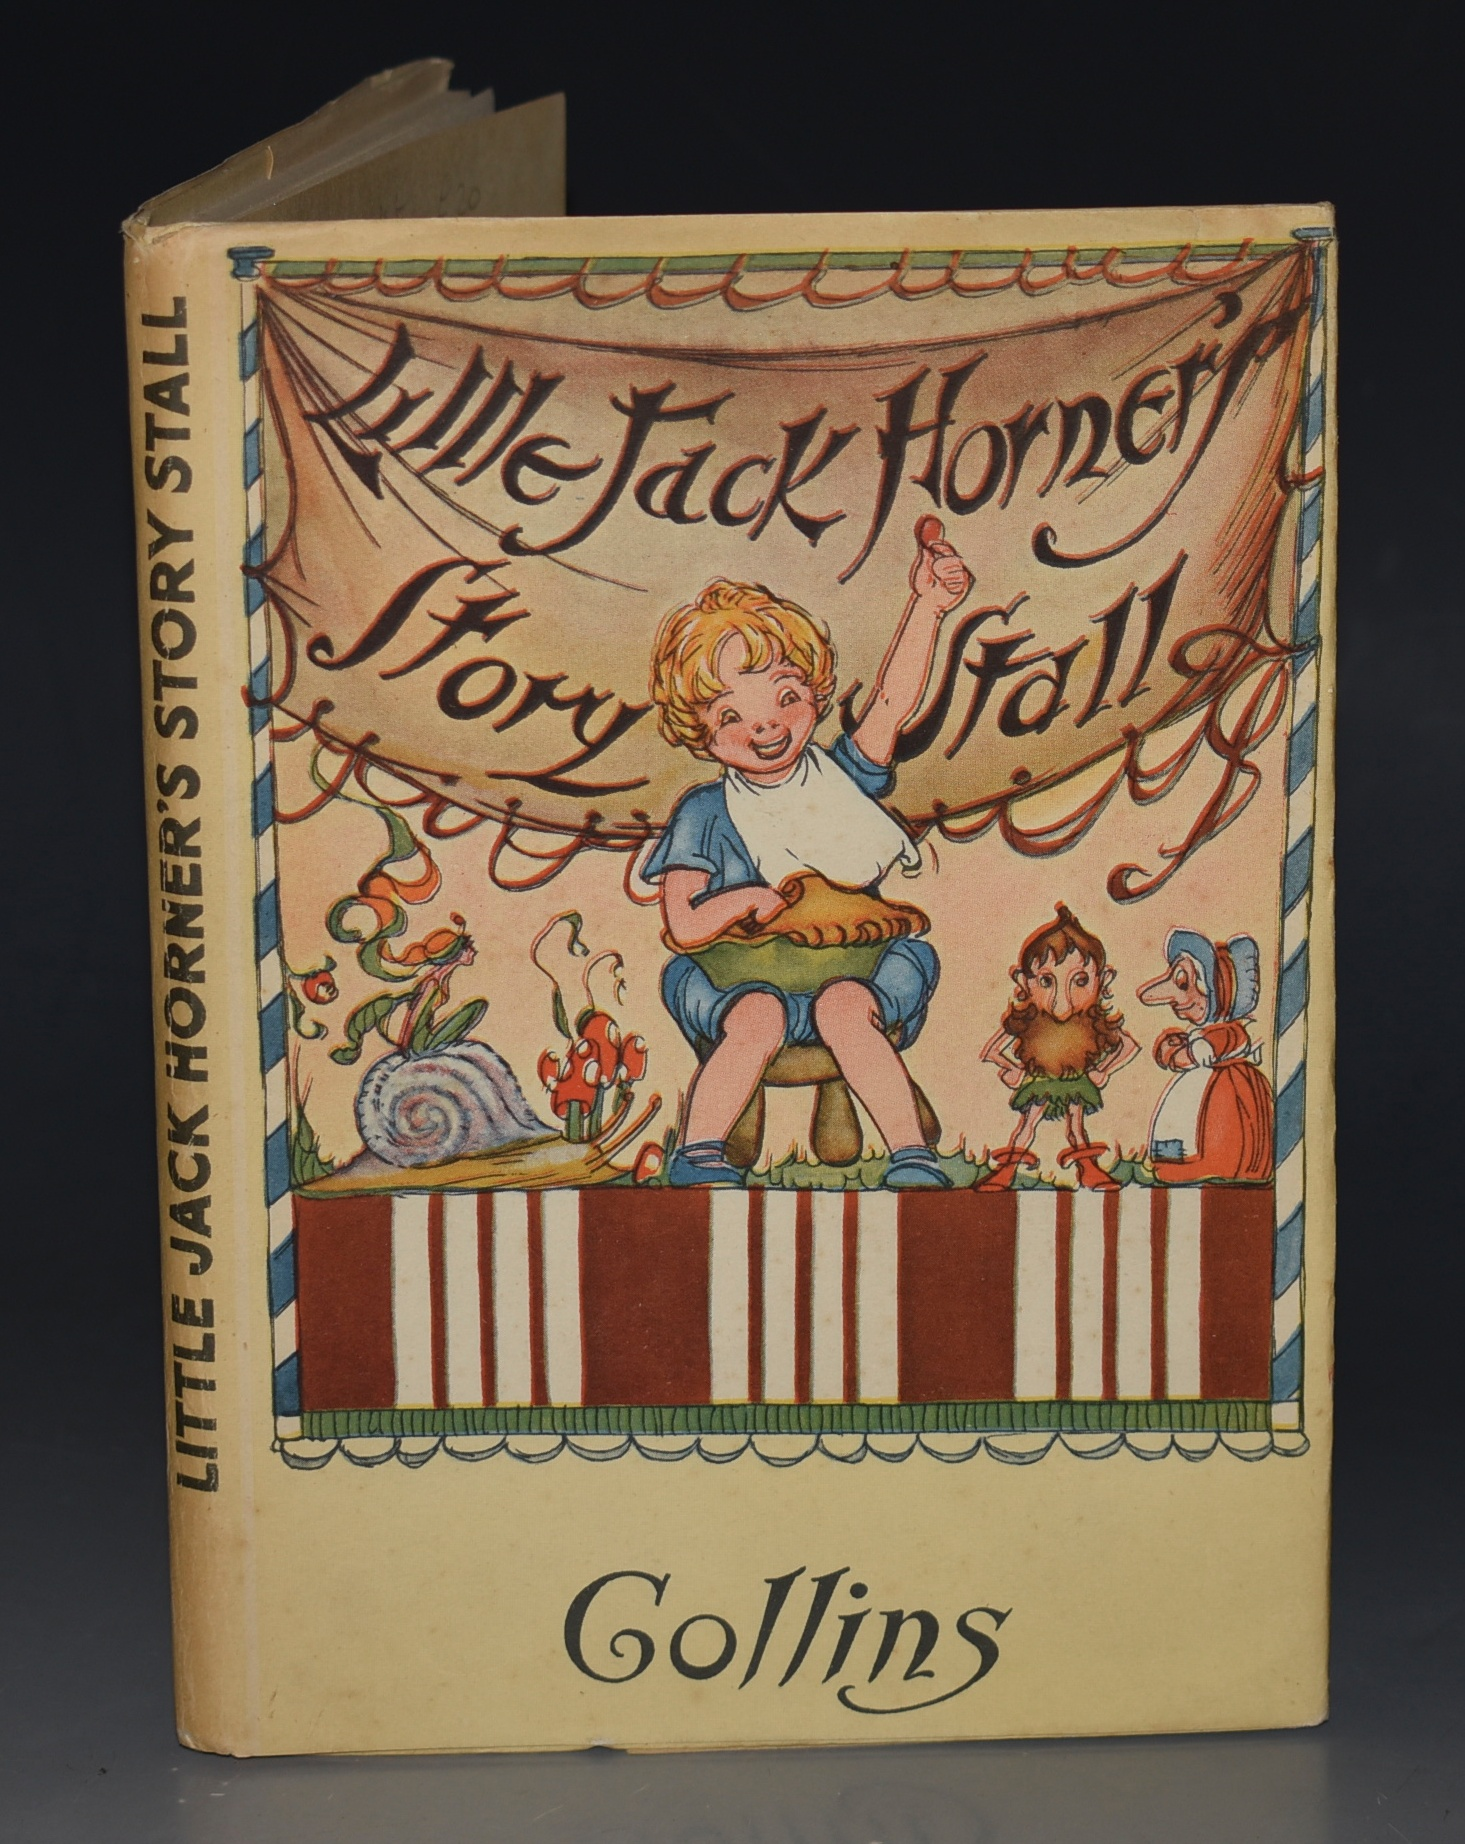 Image for Little Jack Horner's Story Stall